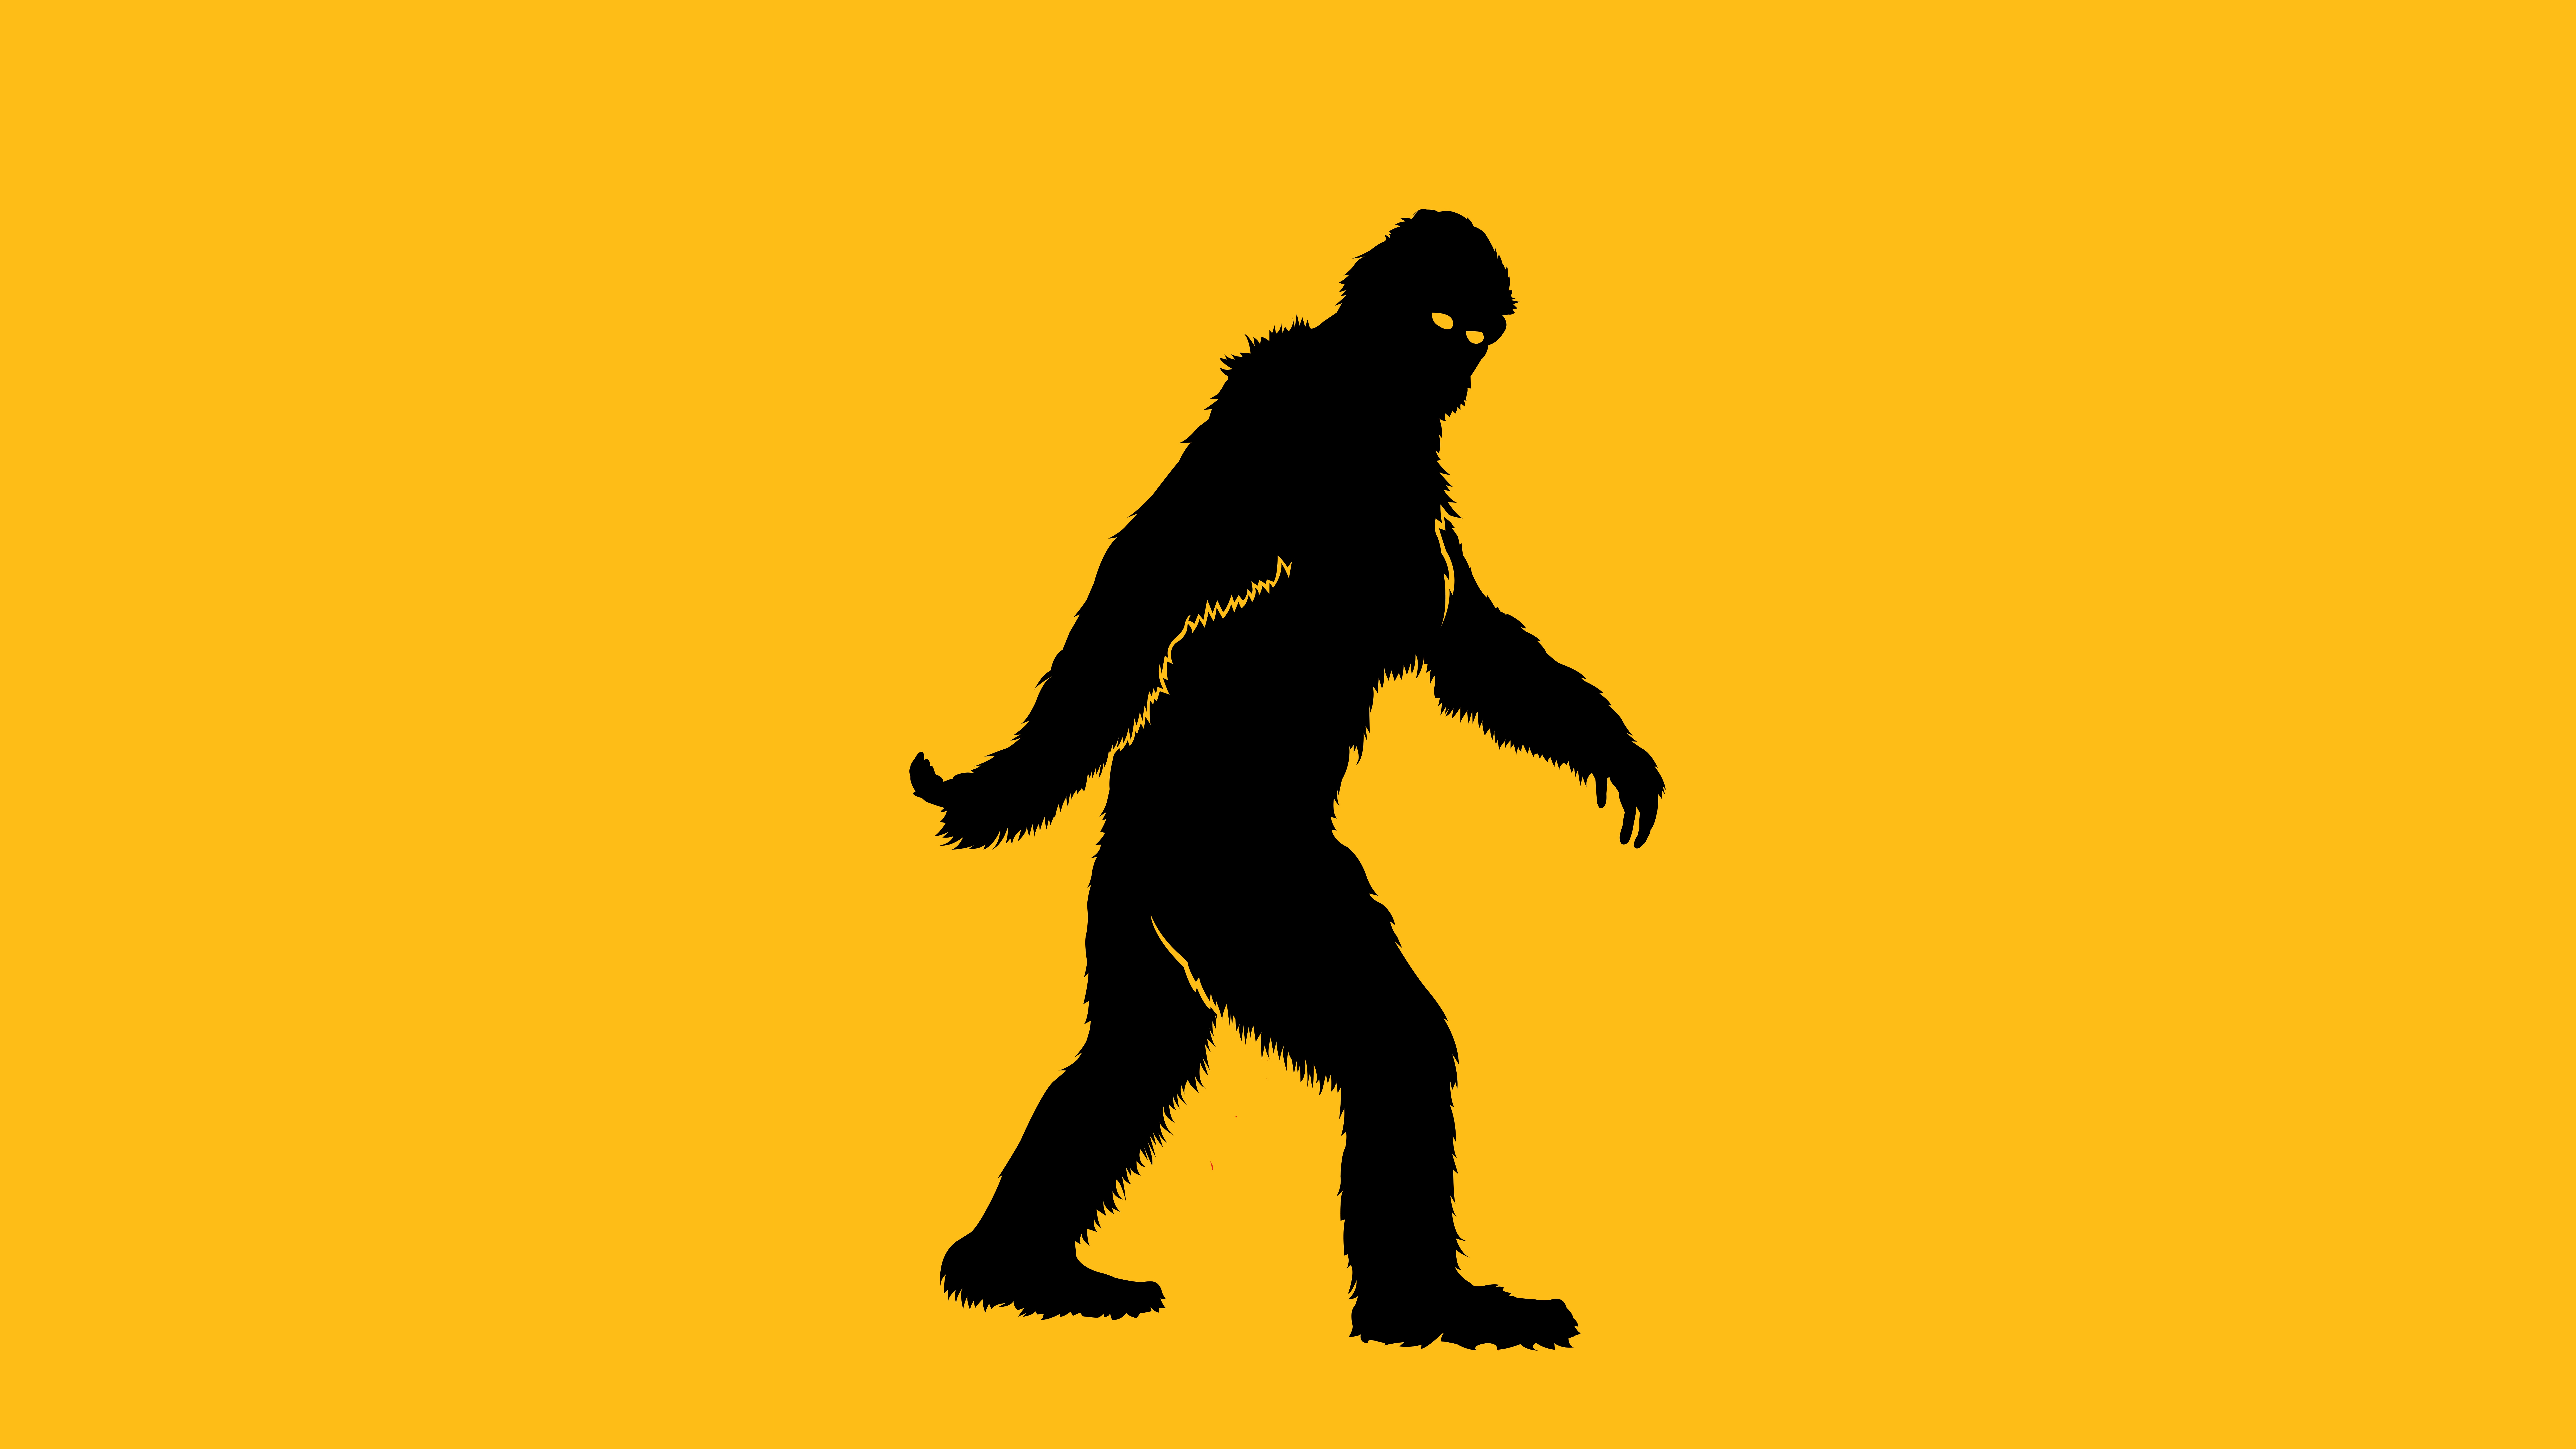 9900x5569 Huge Bigfoot Images, Gsfdcy Graphics